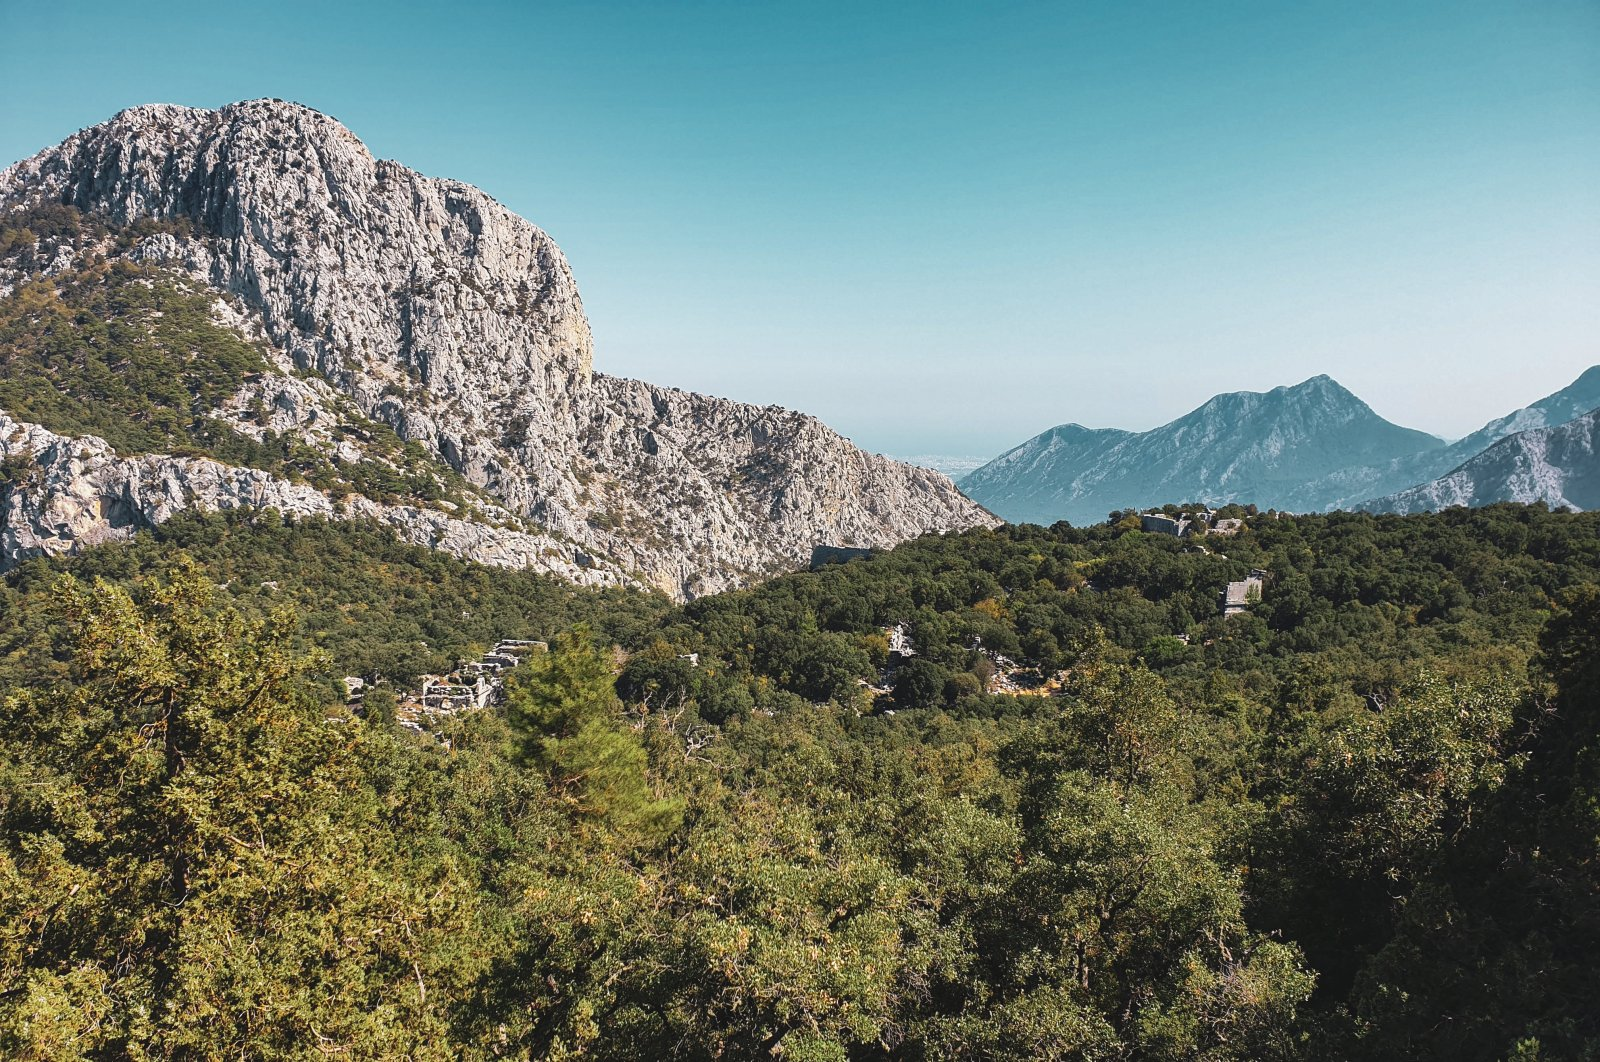 Though mostly in ruins, the ancient city of Termessos is still spectacular and now surrounded by a sea of green. (Photo by Argun Konuk)